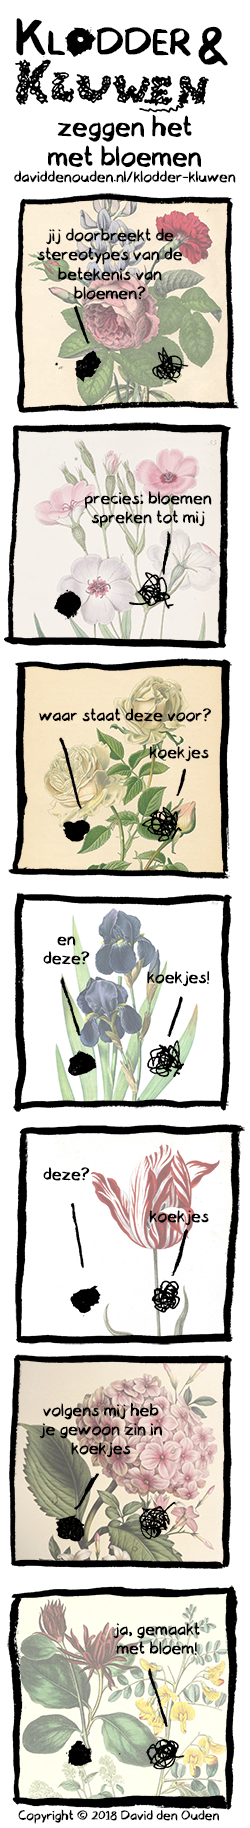 Klodder en Kluwen strip 14 bloemen